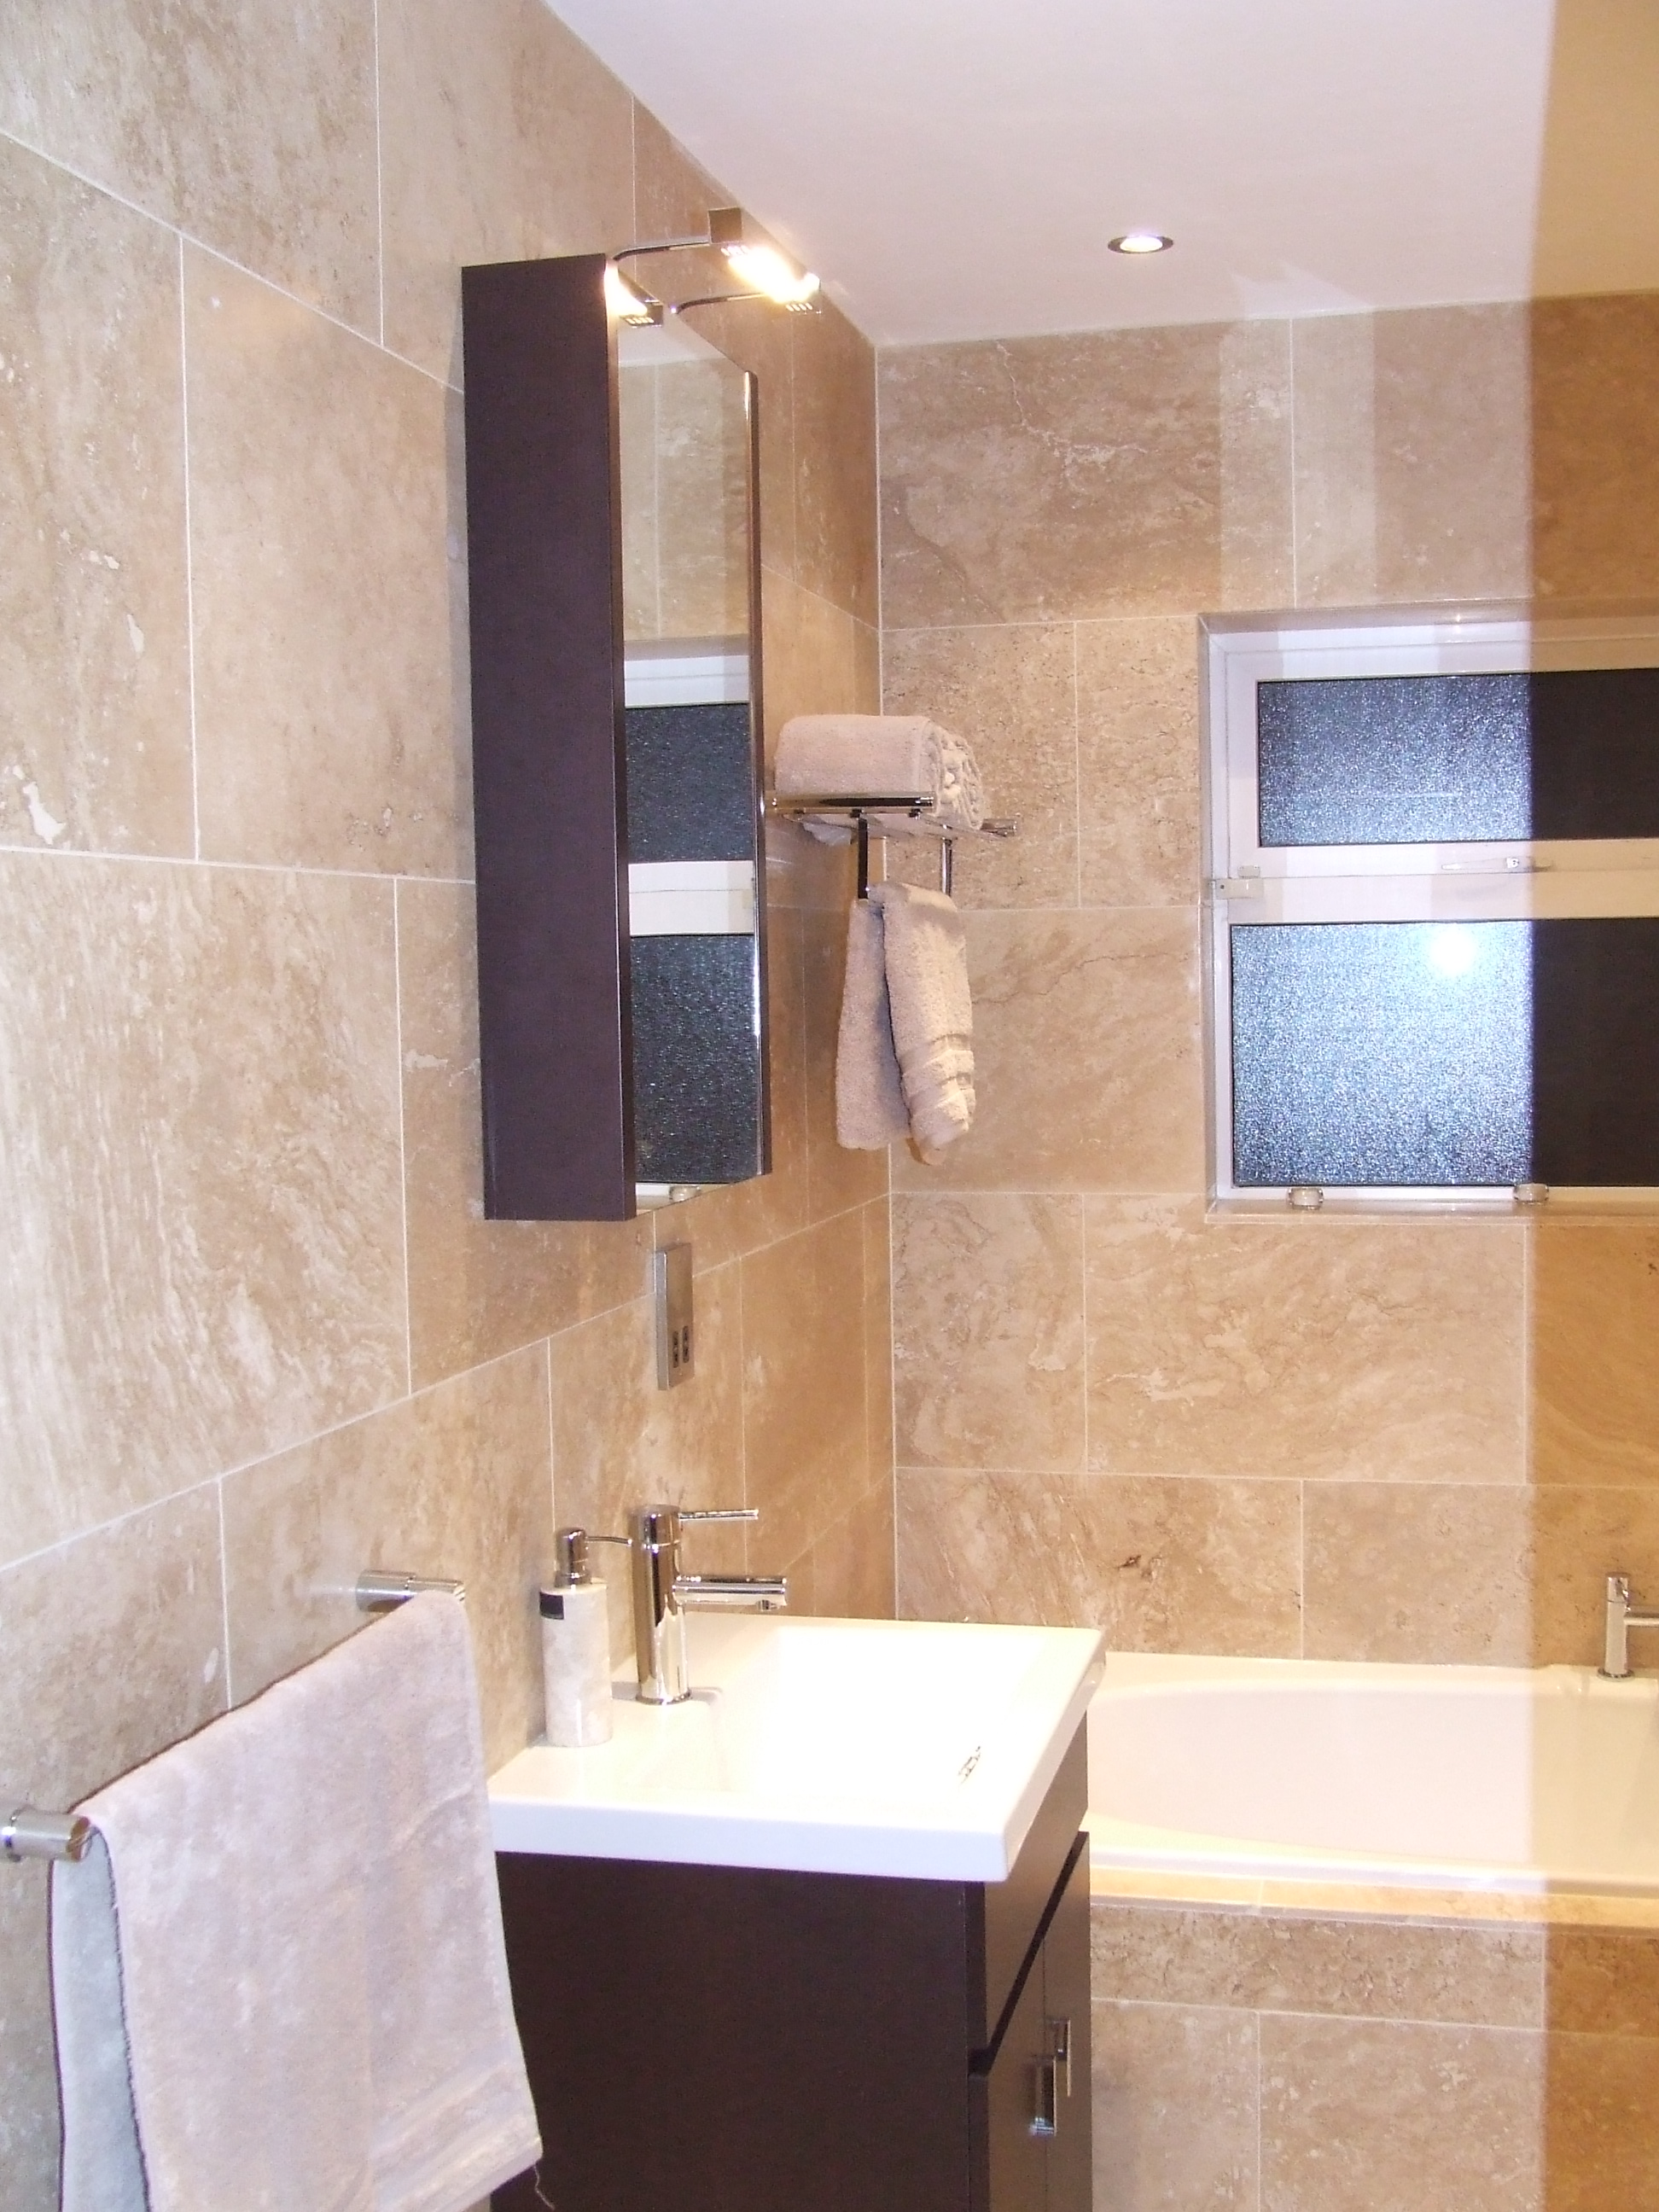 View Pictures And Photos For Kiwi Plumbing Complete Bathroom